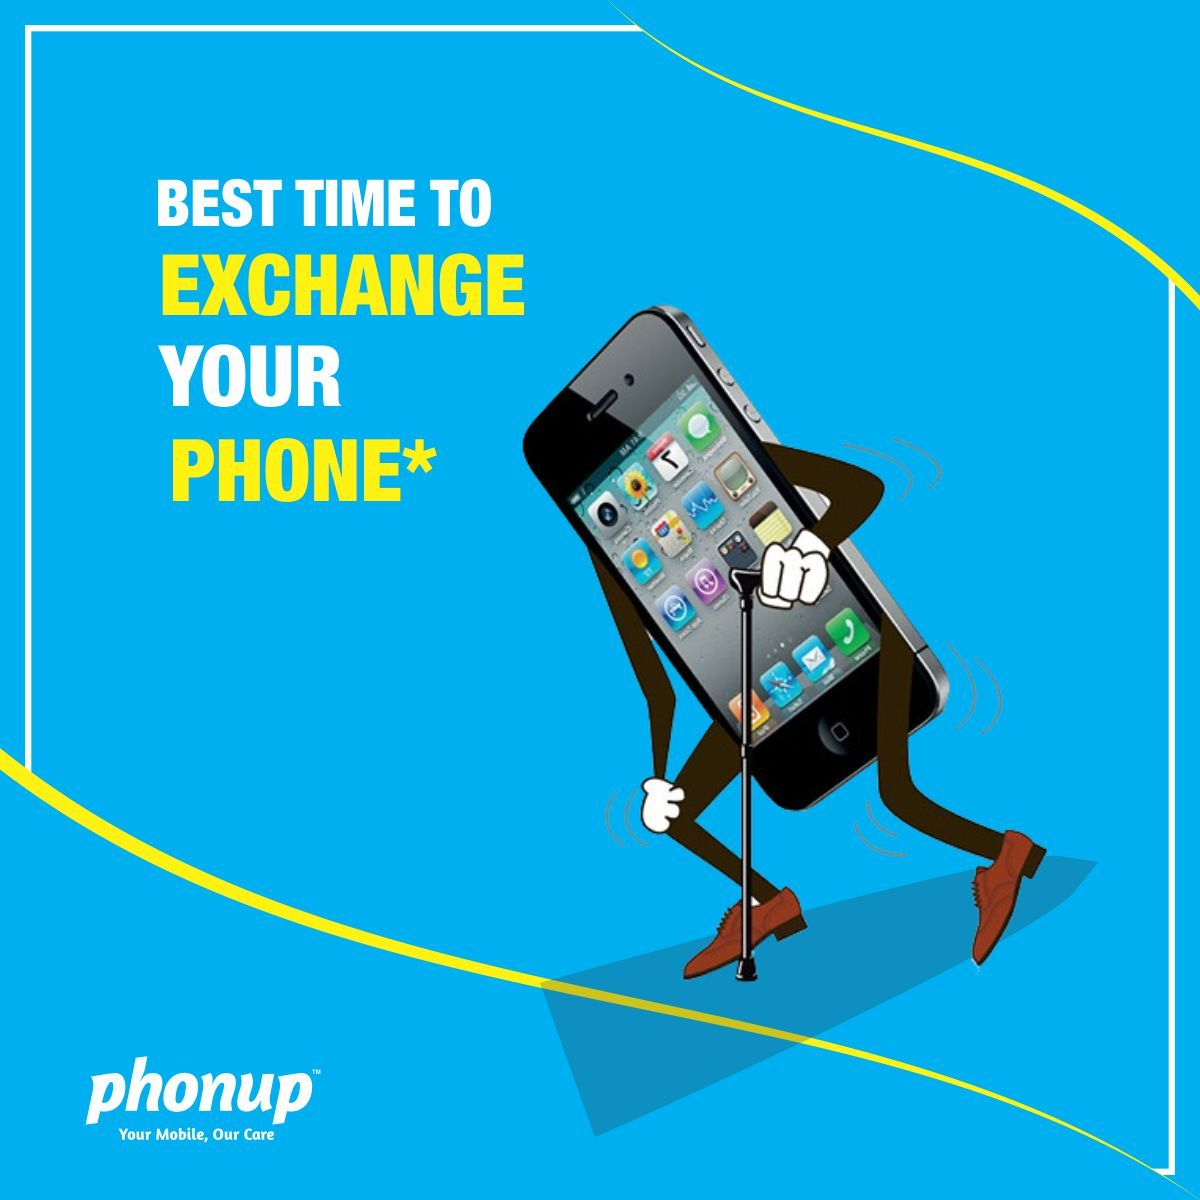 Exchange your old phone with a better model  #selloldmobile